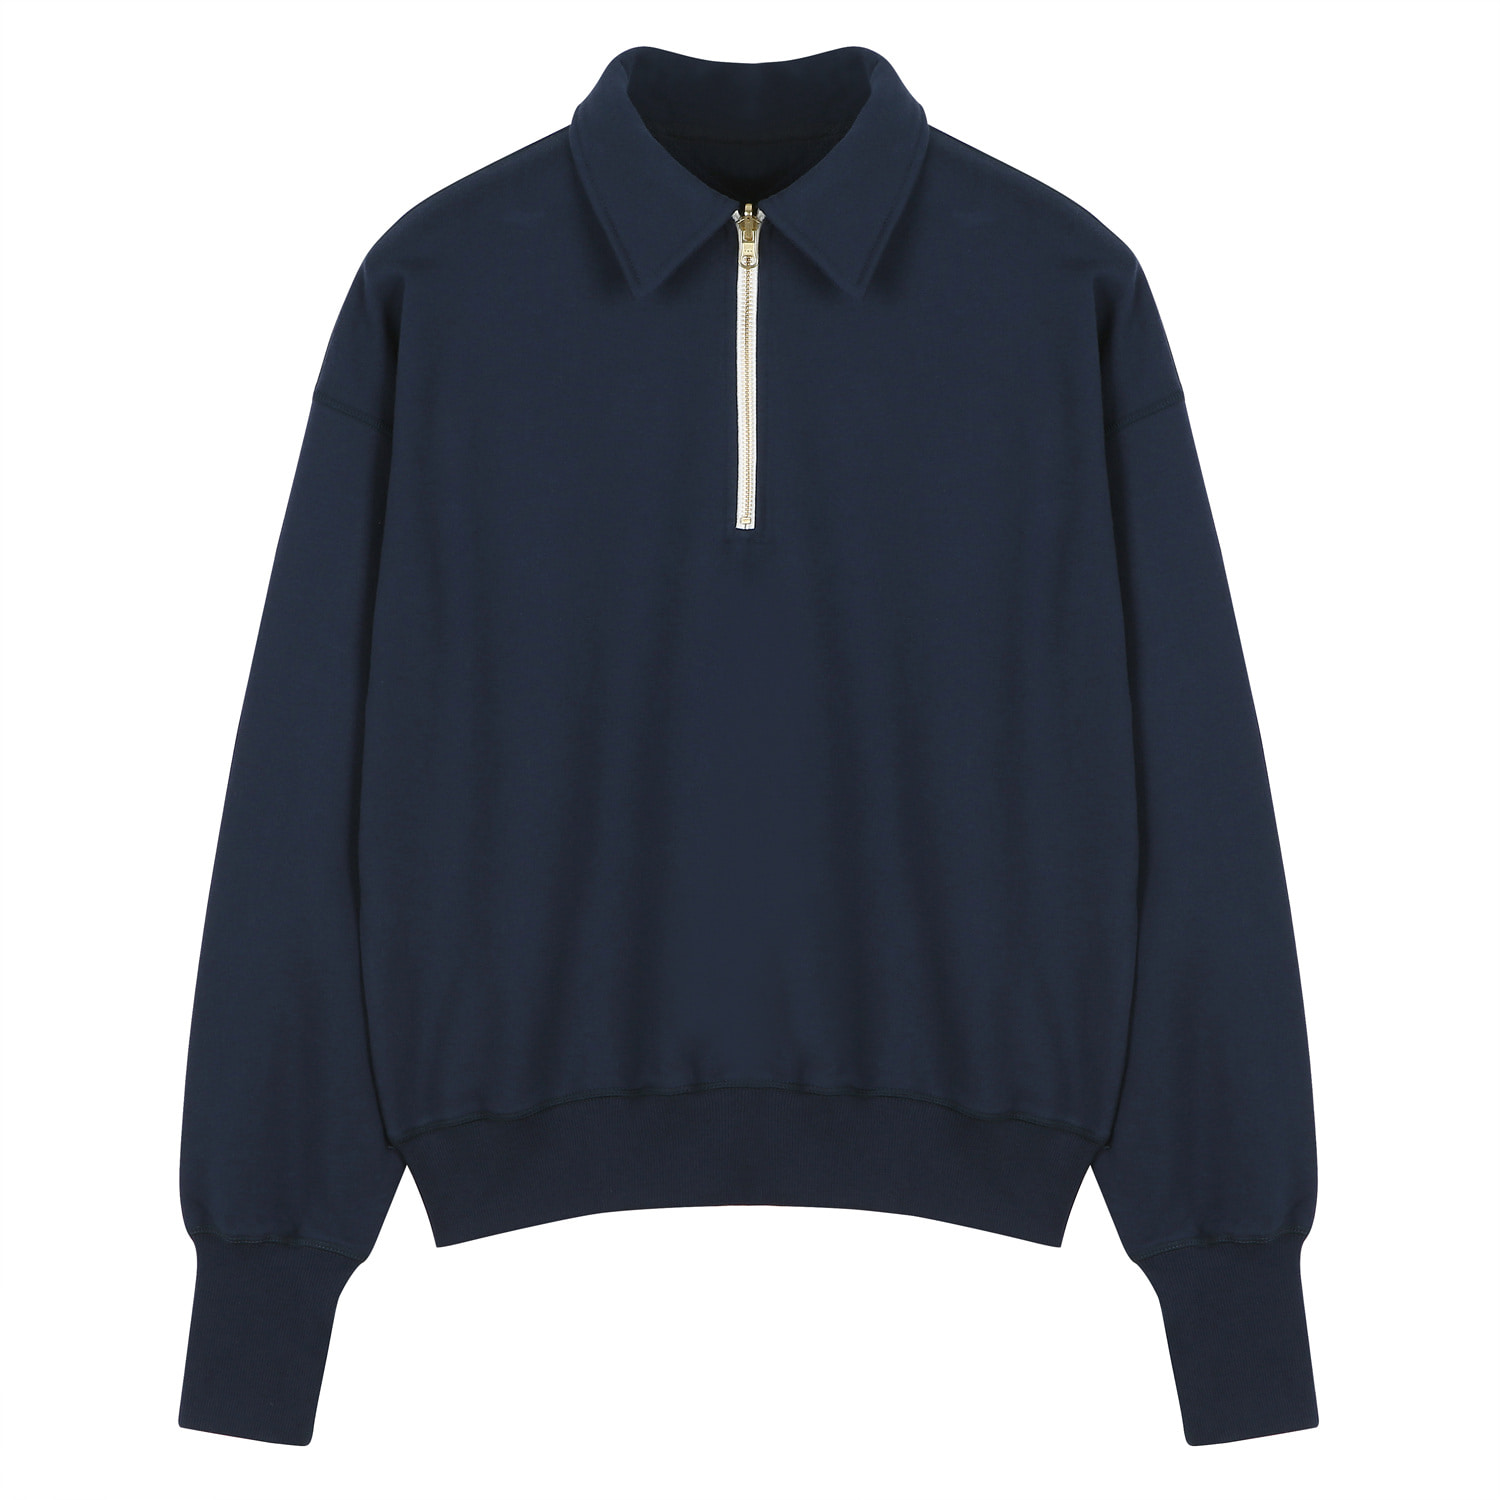 7th RE) ORE COTTON 001 zip-up Navy [06.02(TUE)14:00 재입고]